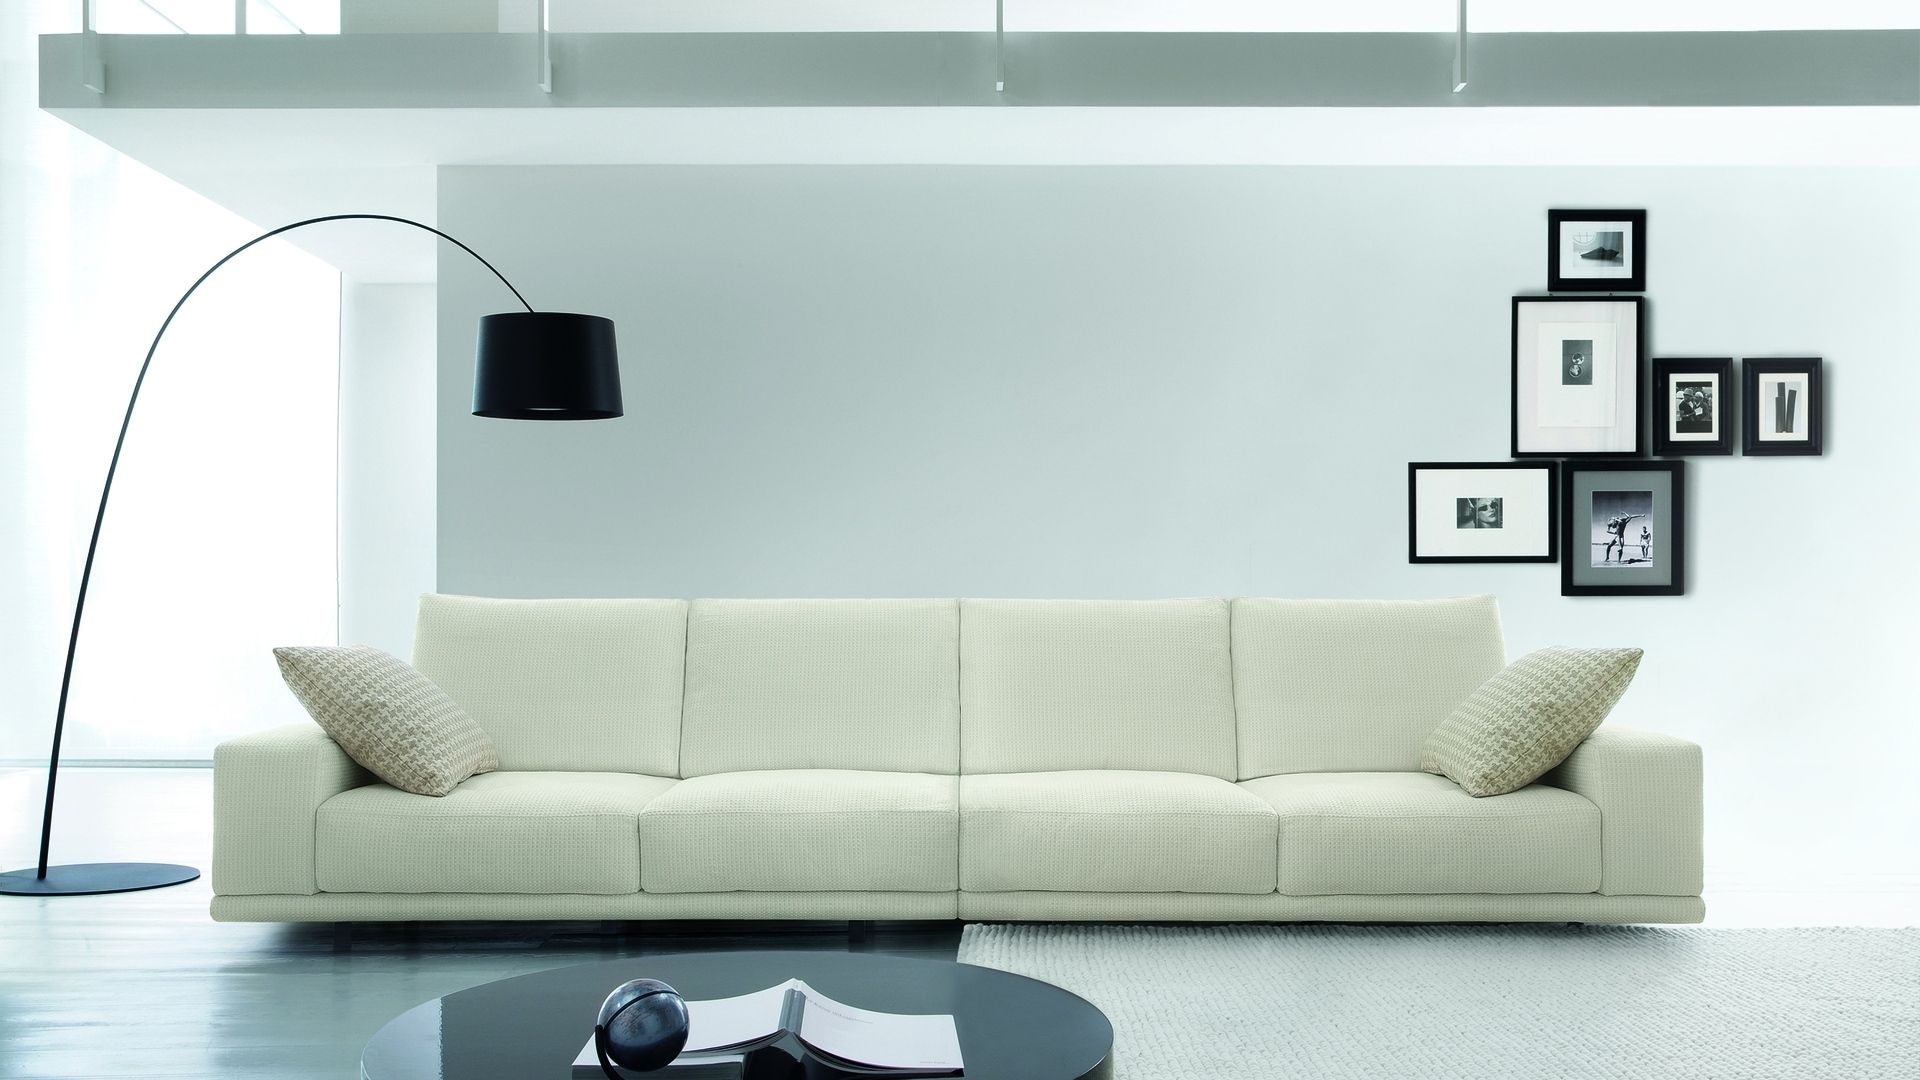 Furniture wallpaper and themes